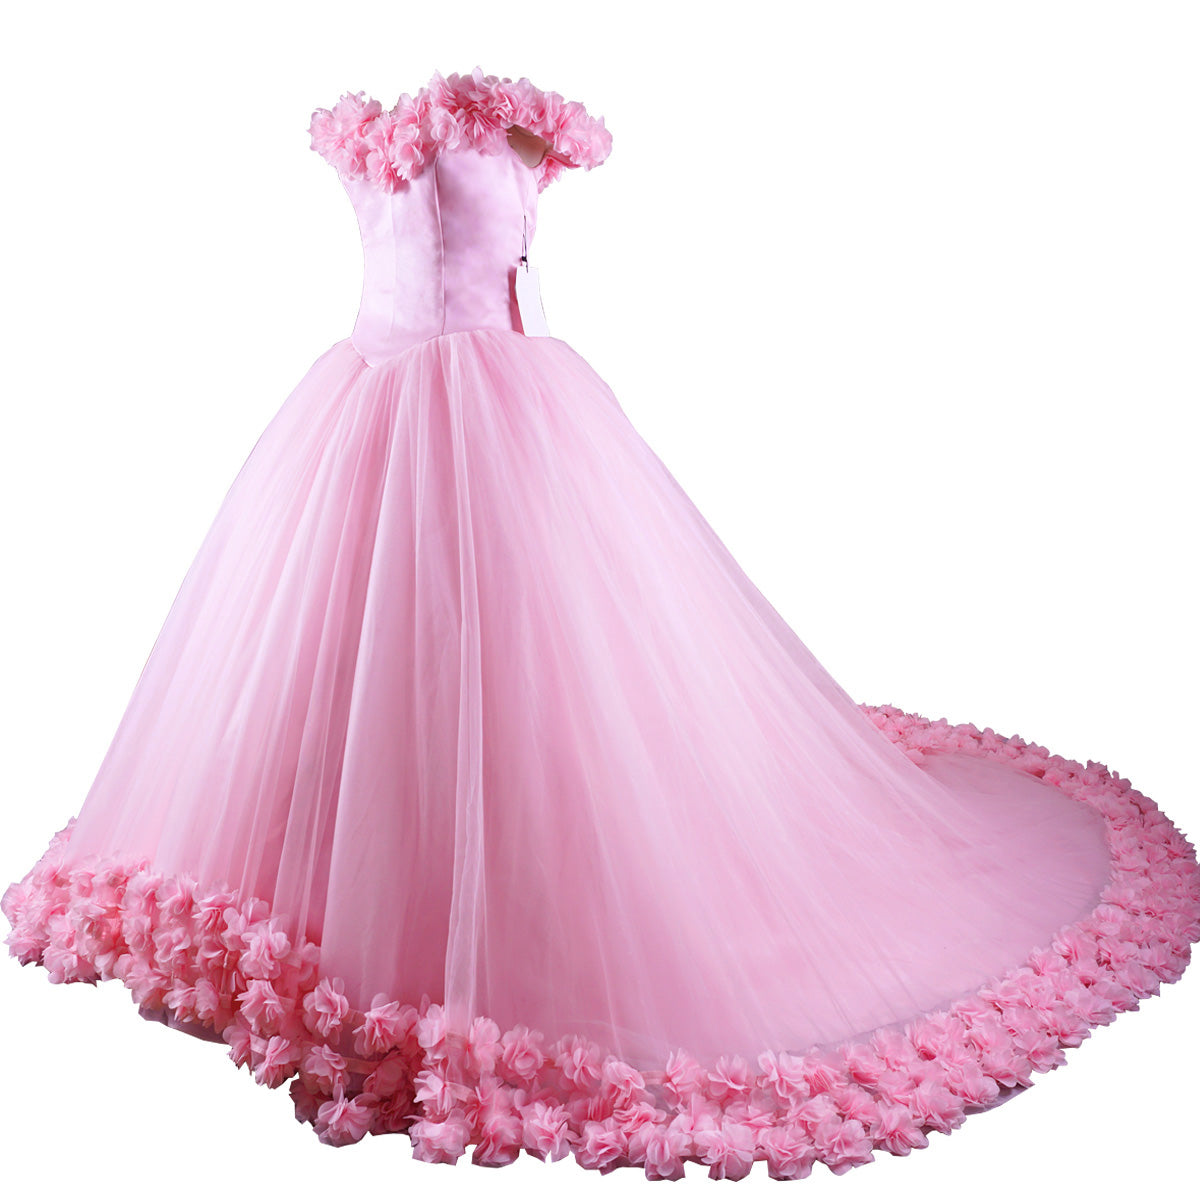 Siaoryne Wd0916 Pink Flowers Wedding Dressball Gowns Bridal Dress Pri